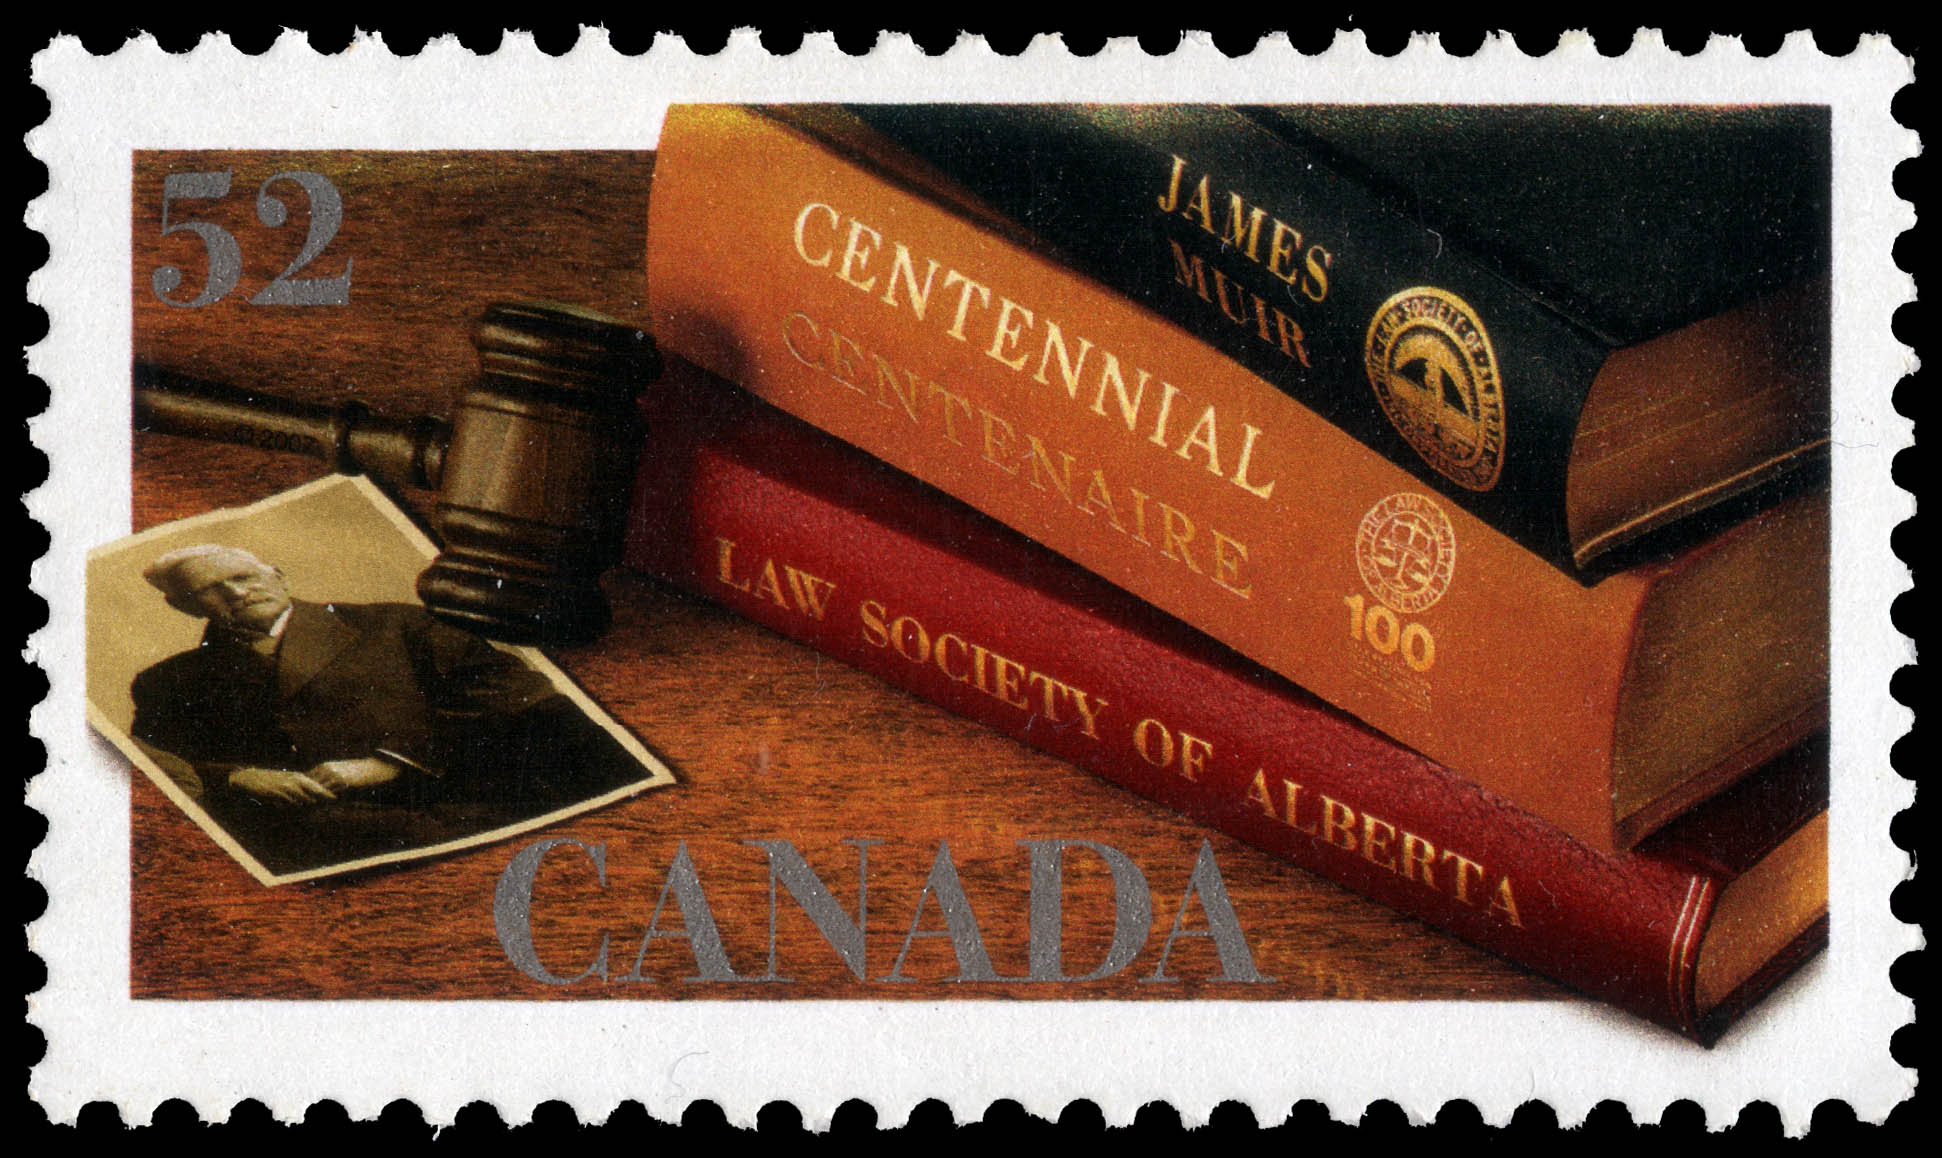 Law Society of Alberta Canada Postage Stamp